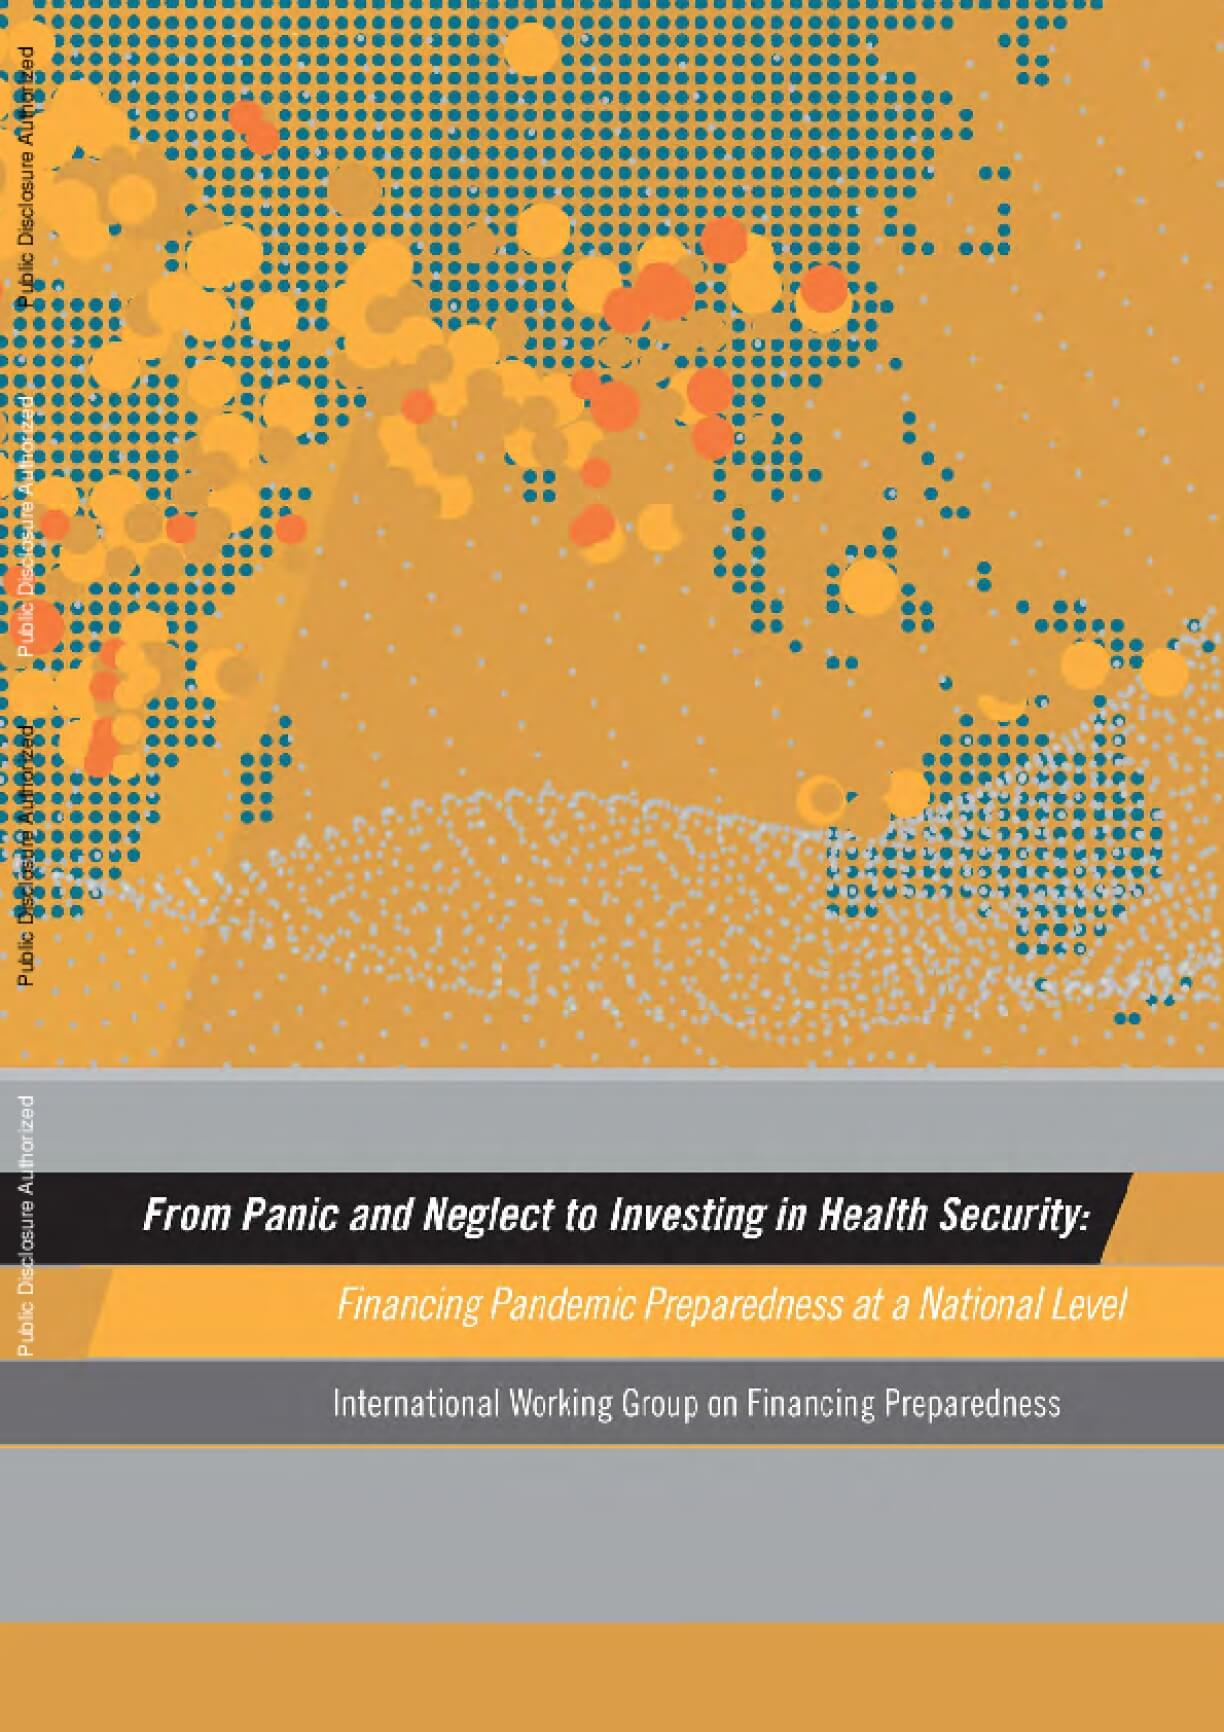 From Panic and Neglect to Investing in Health Security: Financing Pandemic Preparedness at a National Level